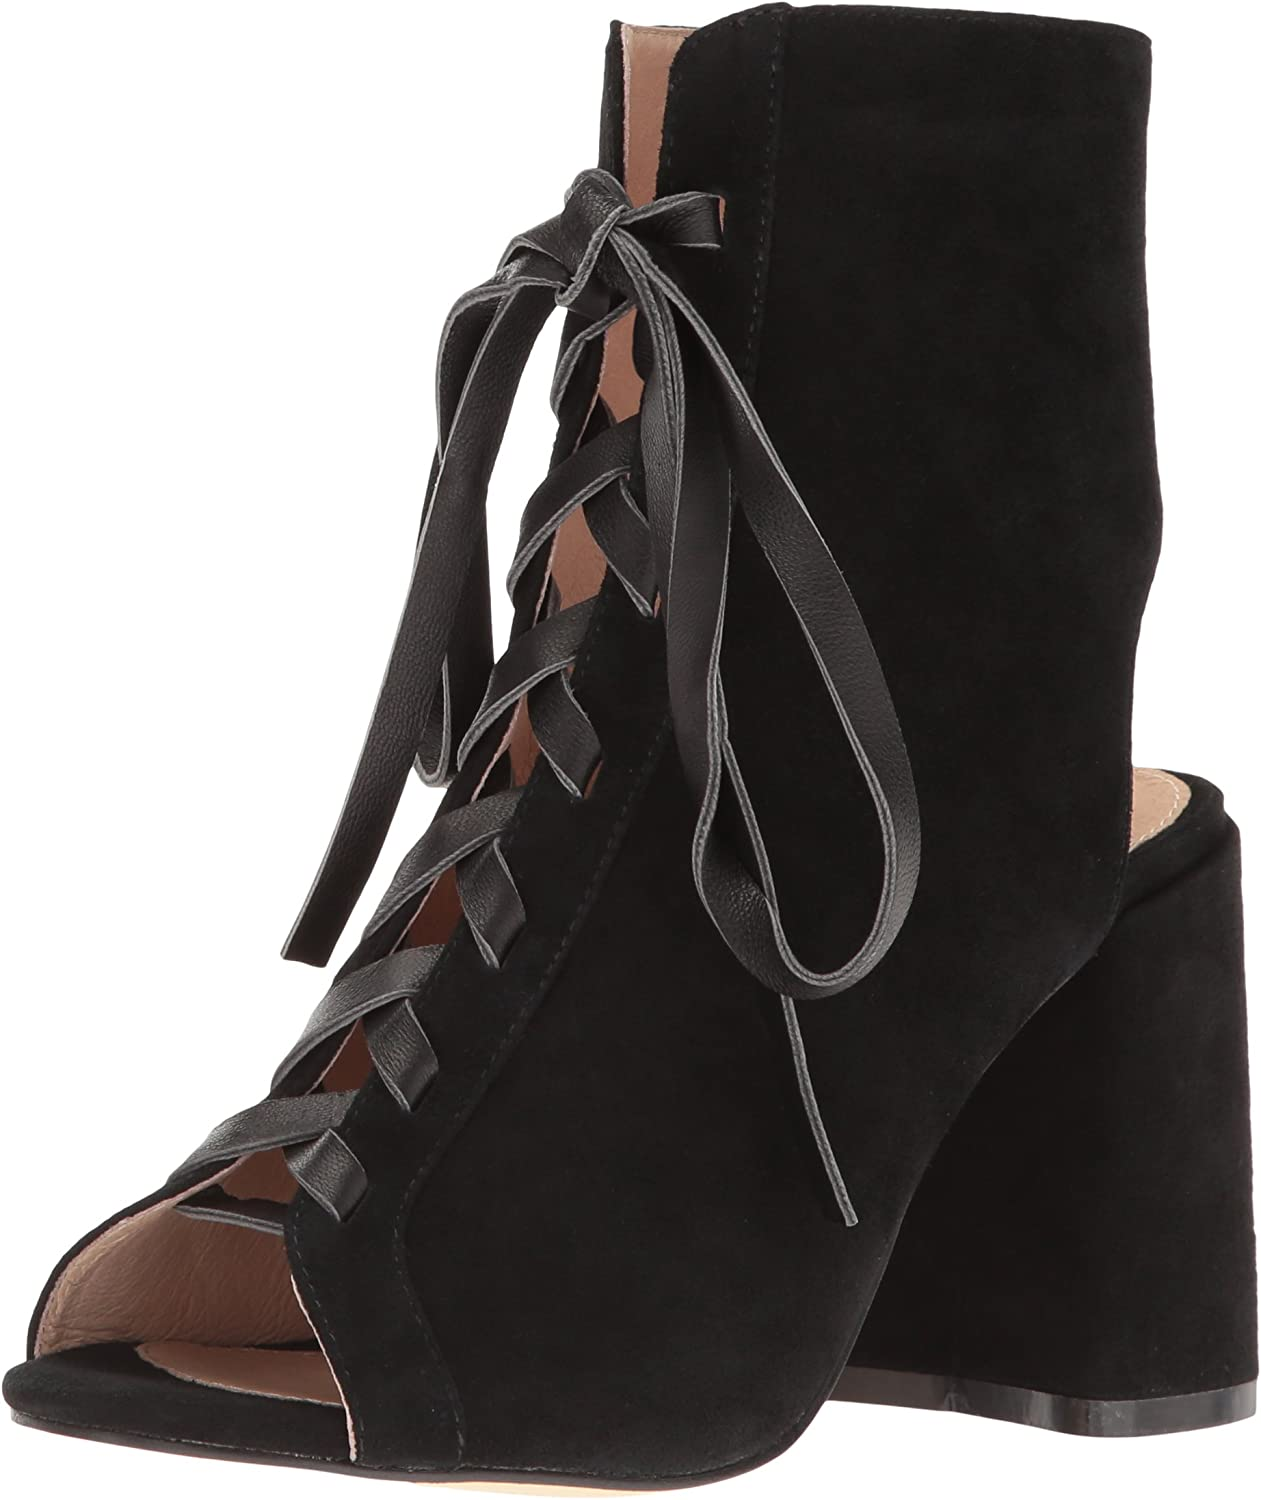 Shellys London Womens Charmian Ankle Bootie